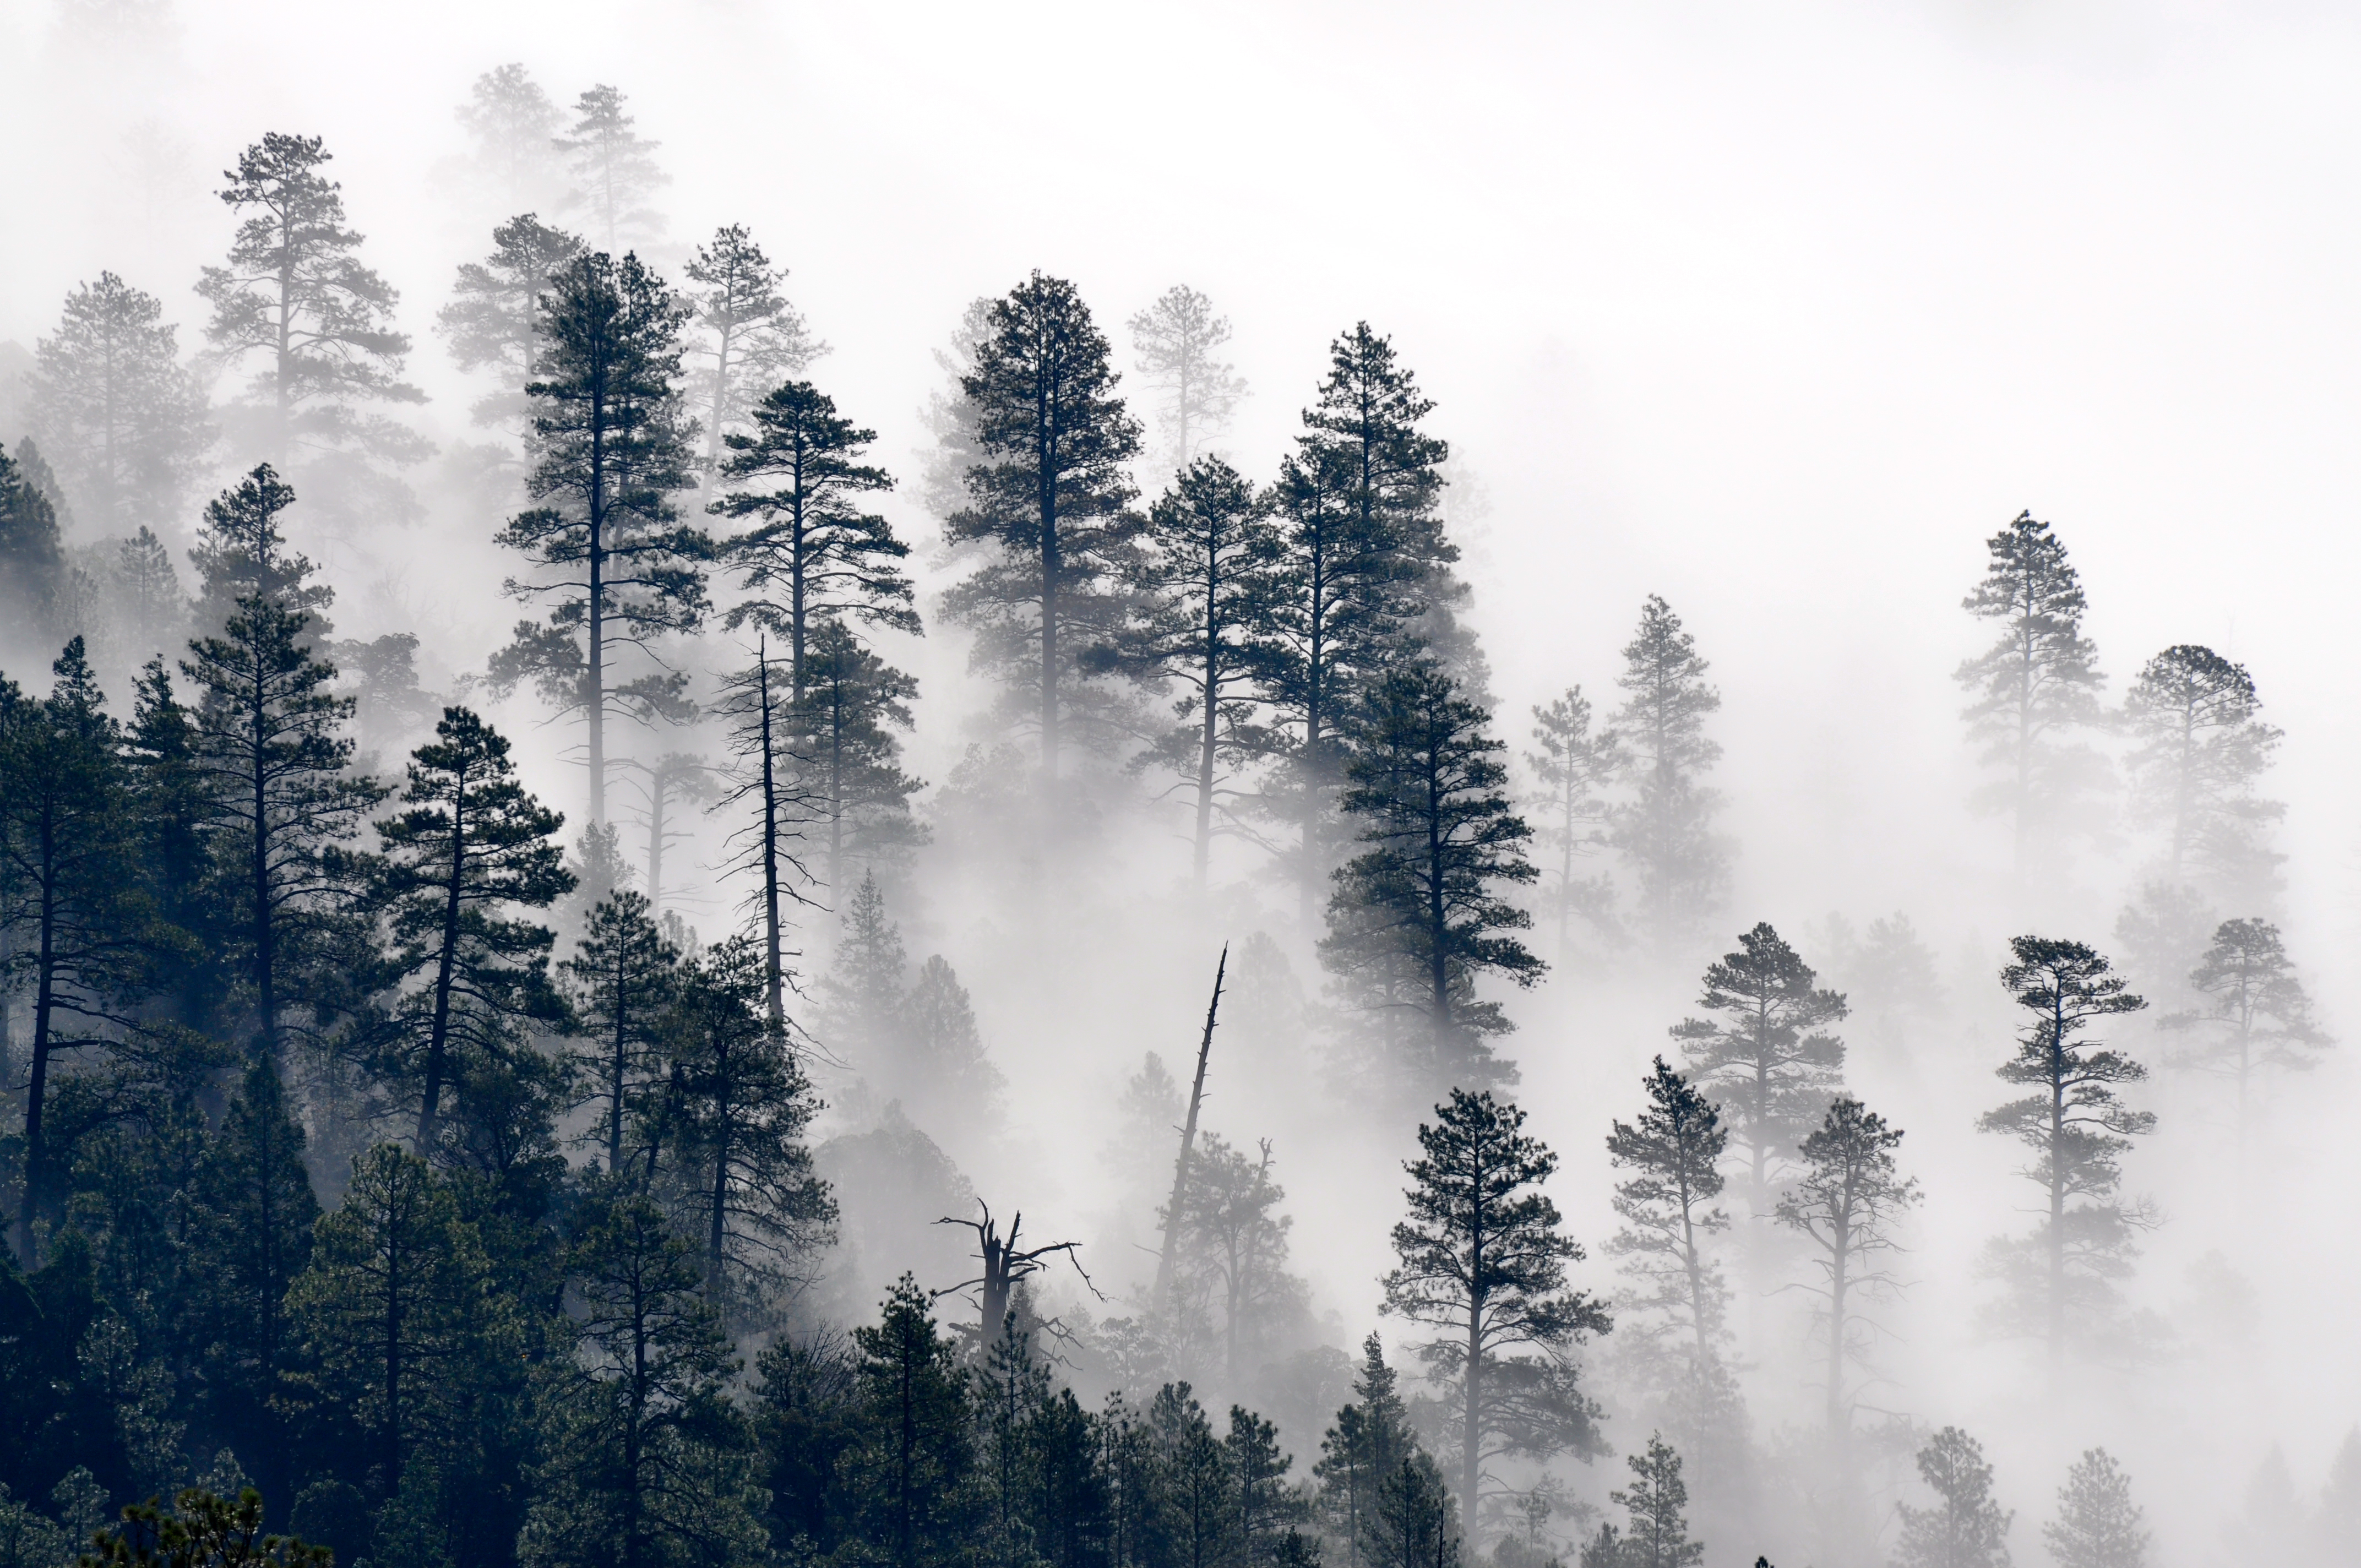 File:Trees in the mist (7699564540).jpg - Wikimedia Commons